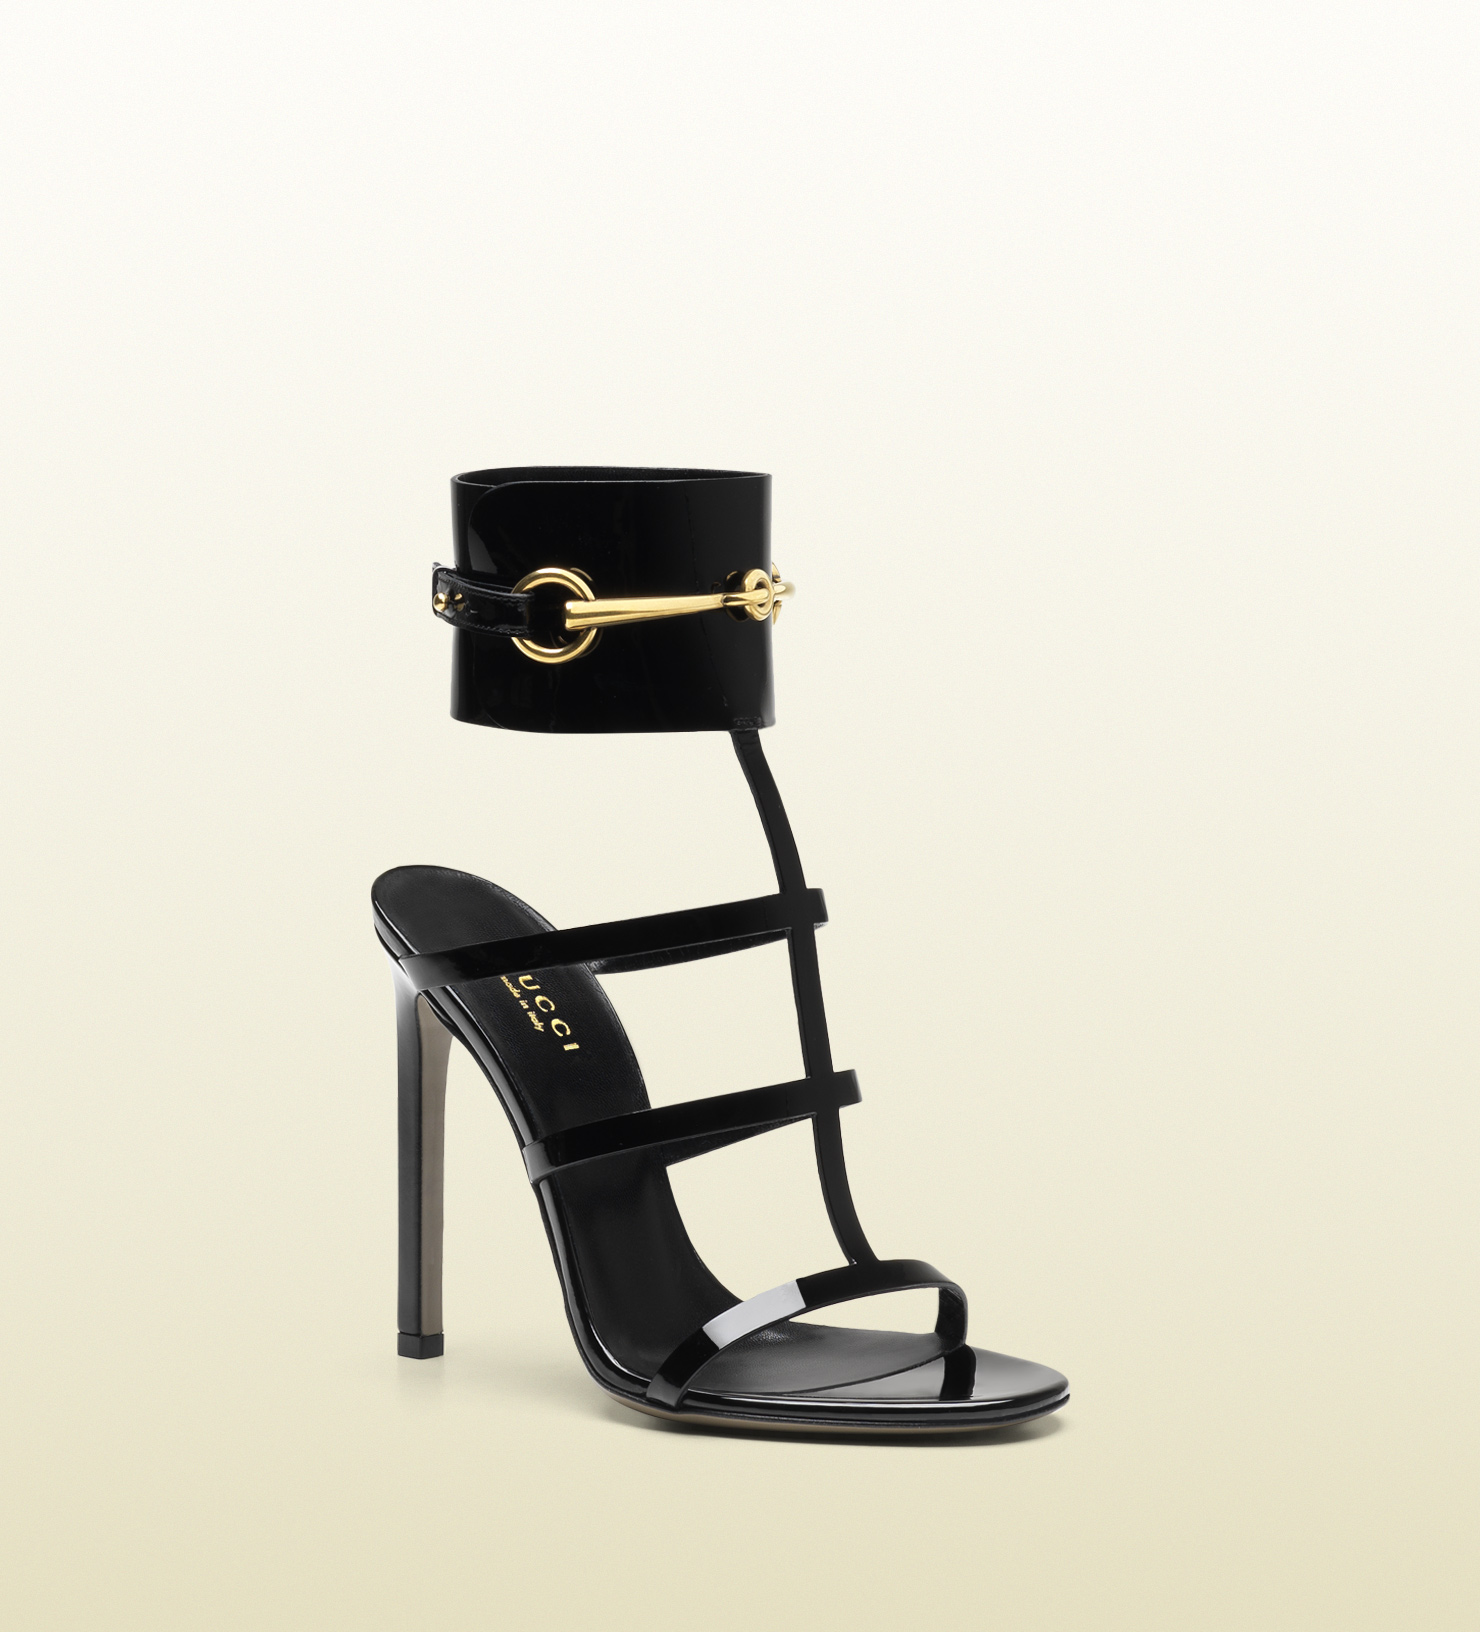 Gucci - ankle-strap patent leather sandal 319588BNC001000